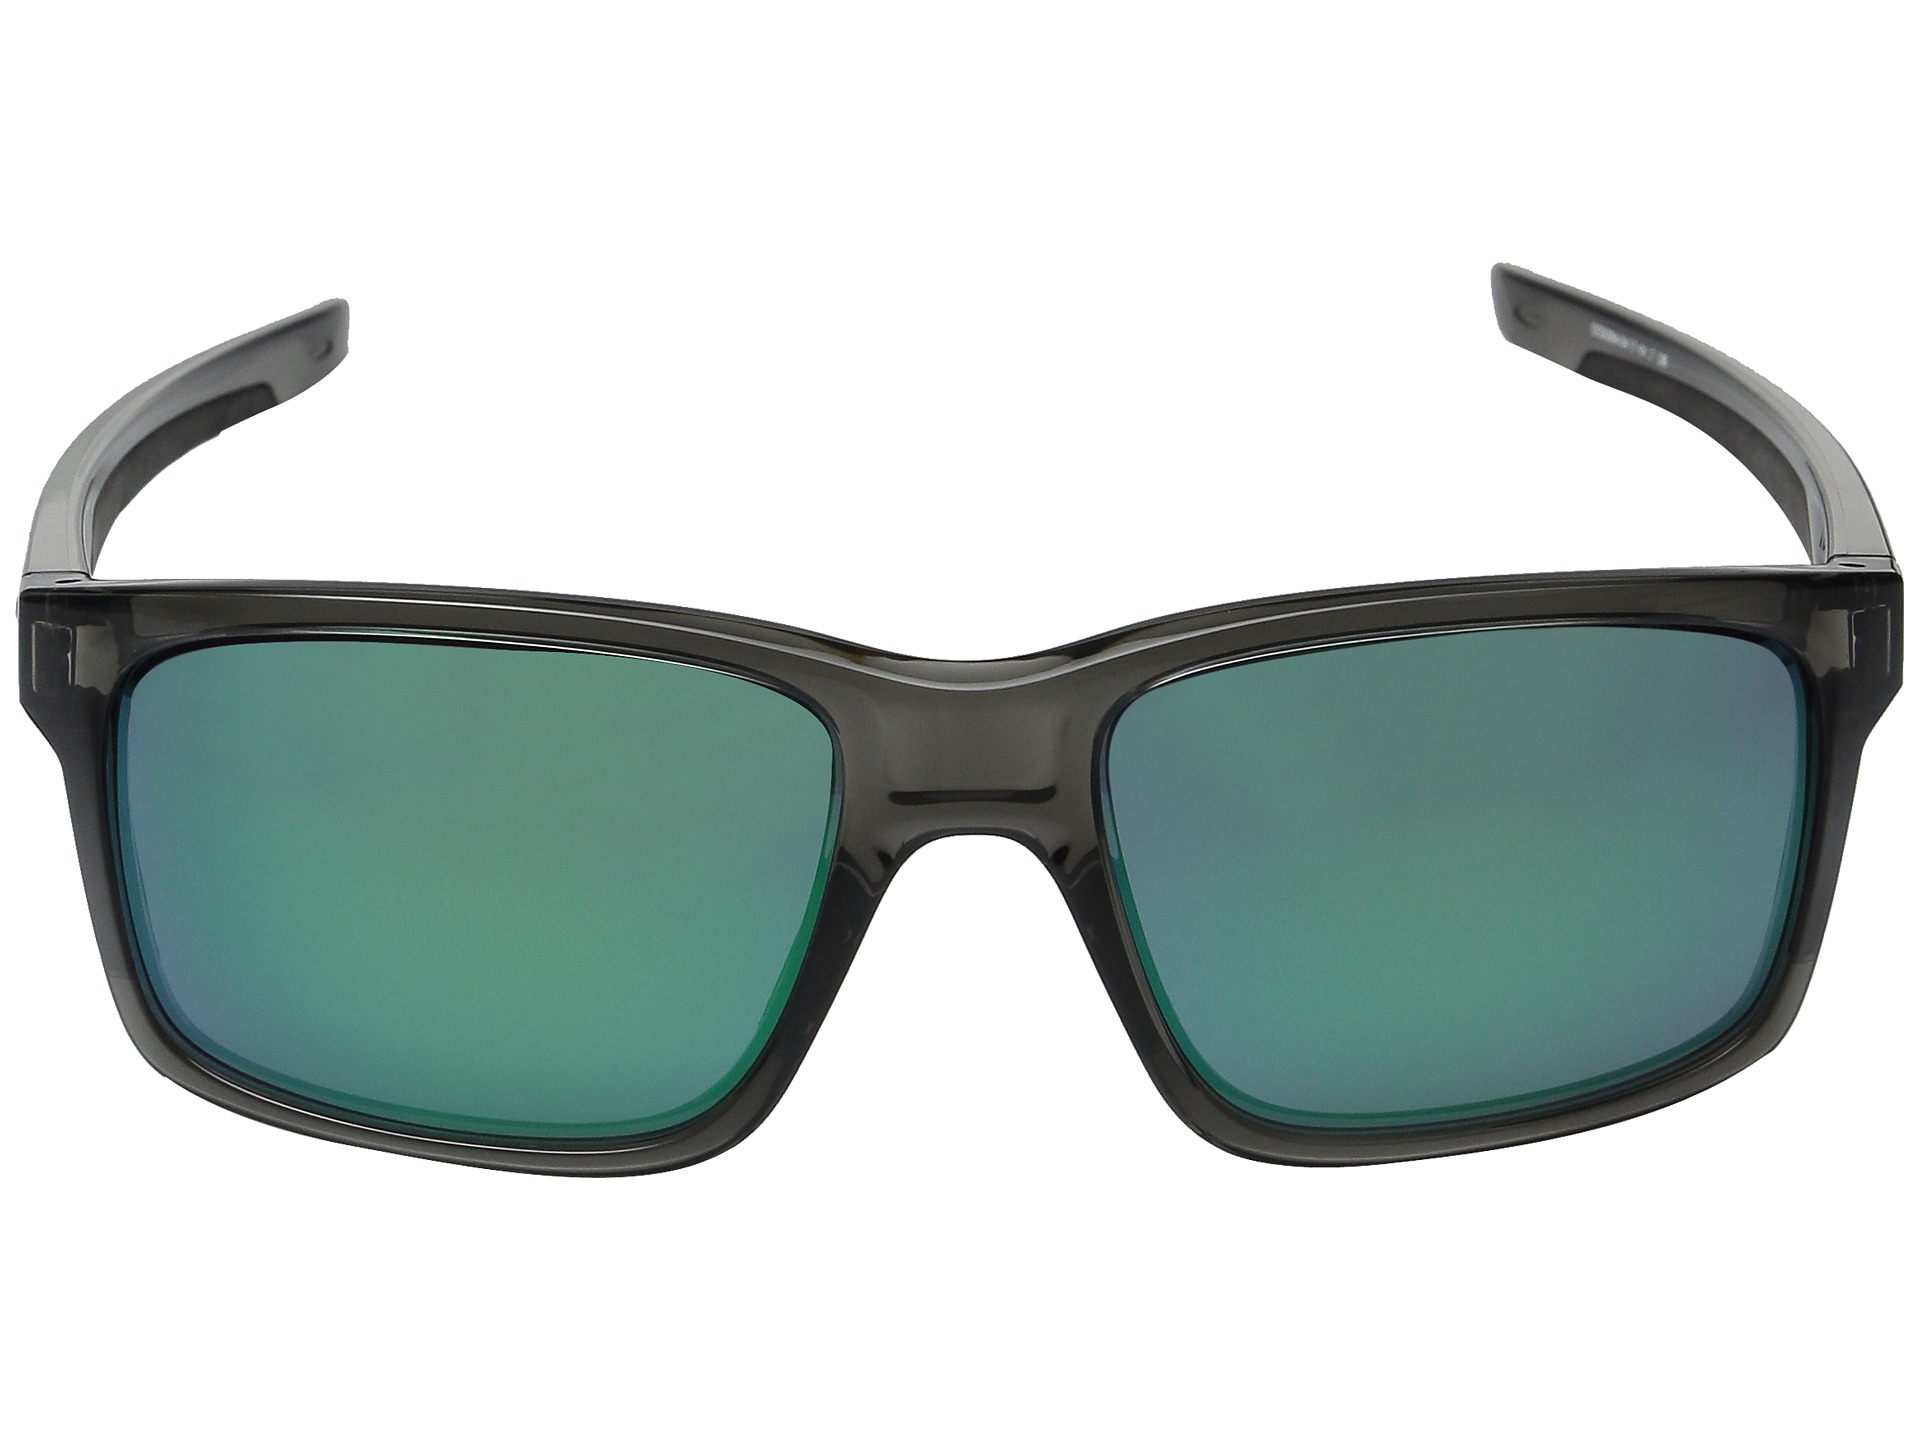 5cf88f76ca Oakley Mainlink Sunglasses - Grey Smoke jade Iridium - Bitterroot ...